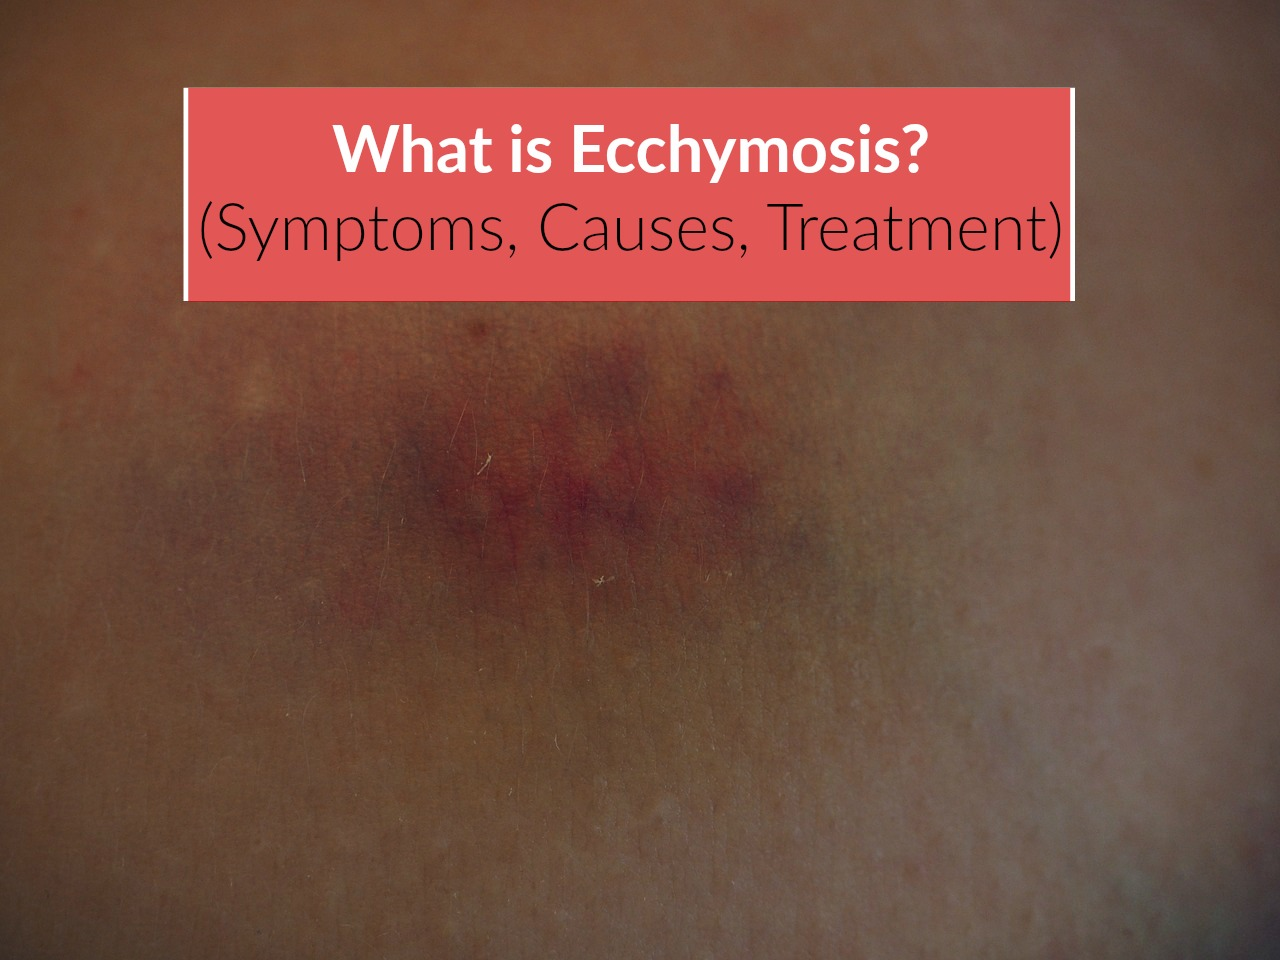 What is Ecchymosis